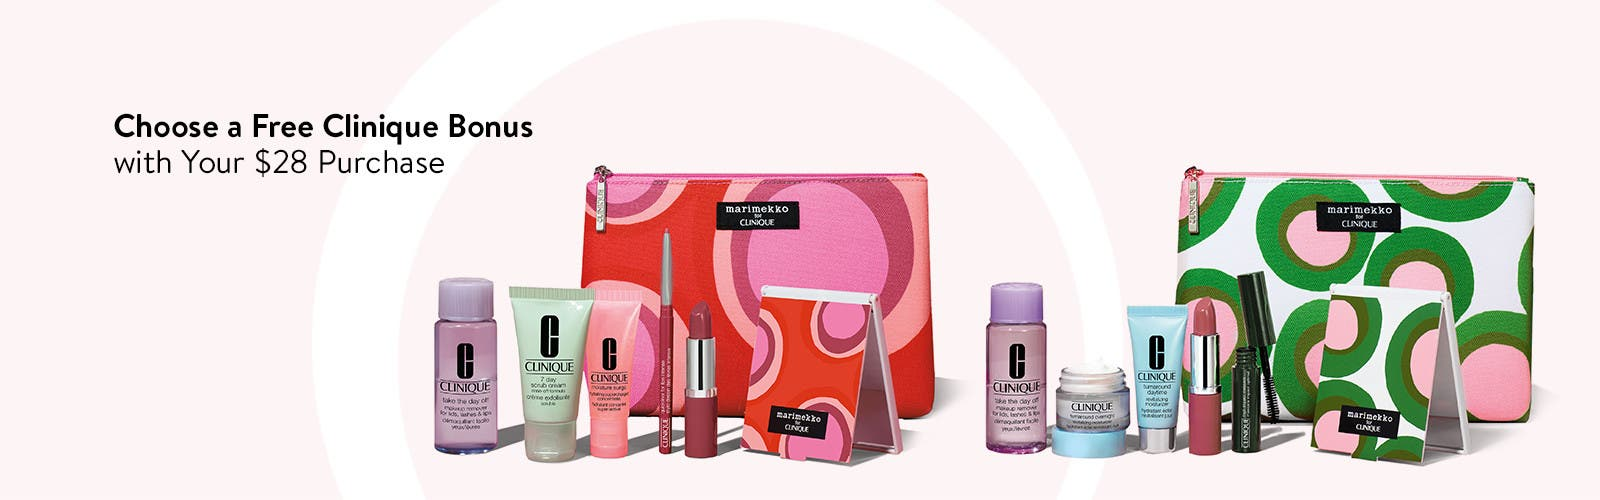 Choose a free bonus with $28 Clinique purchase.